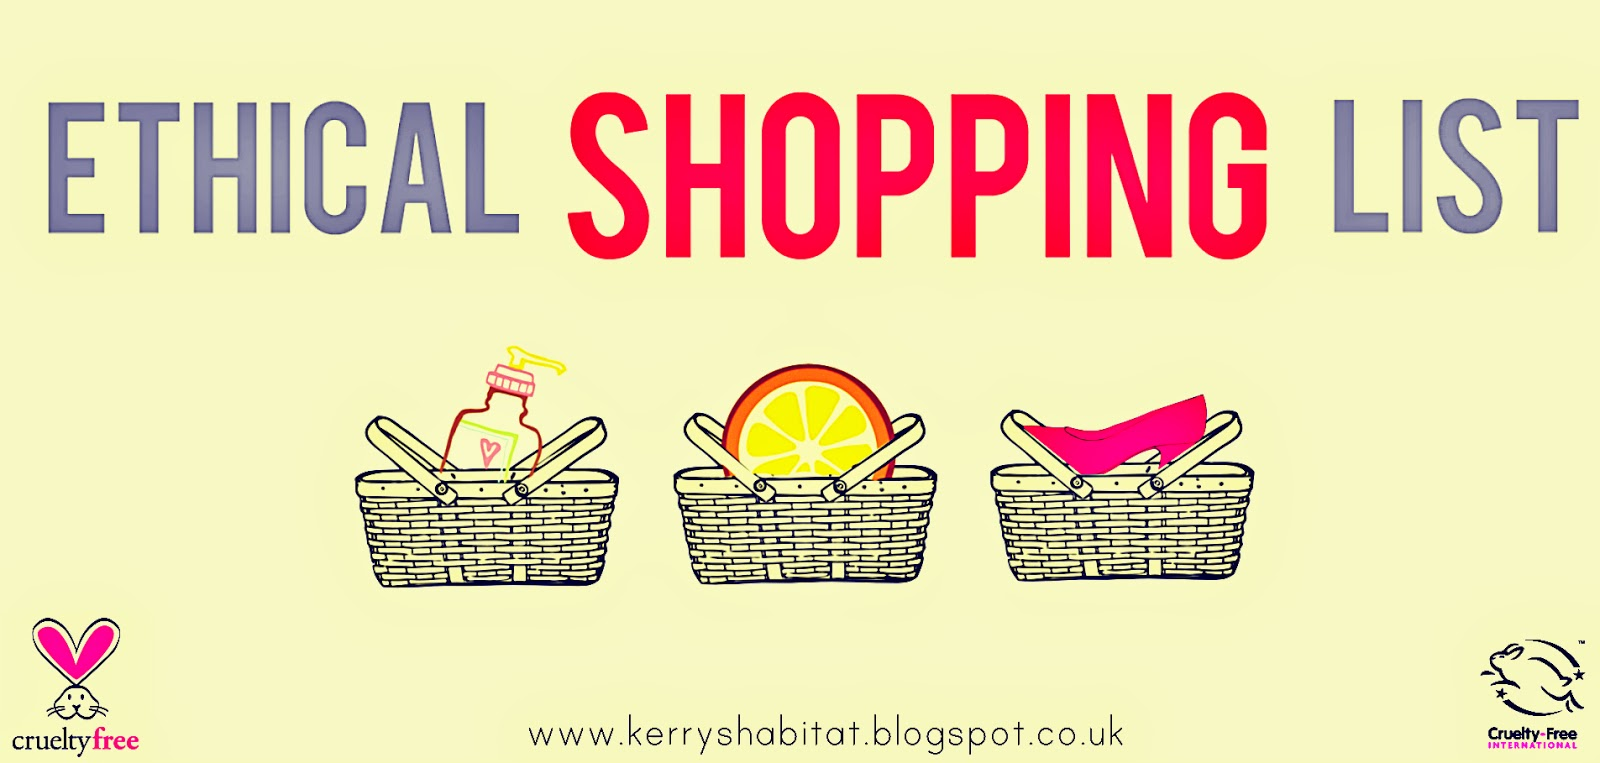 http://kerryshabitat.blogspot.co.uk/2014/09/afforable-ethical-shopping-list-uk.html